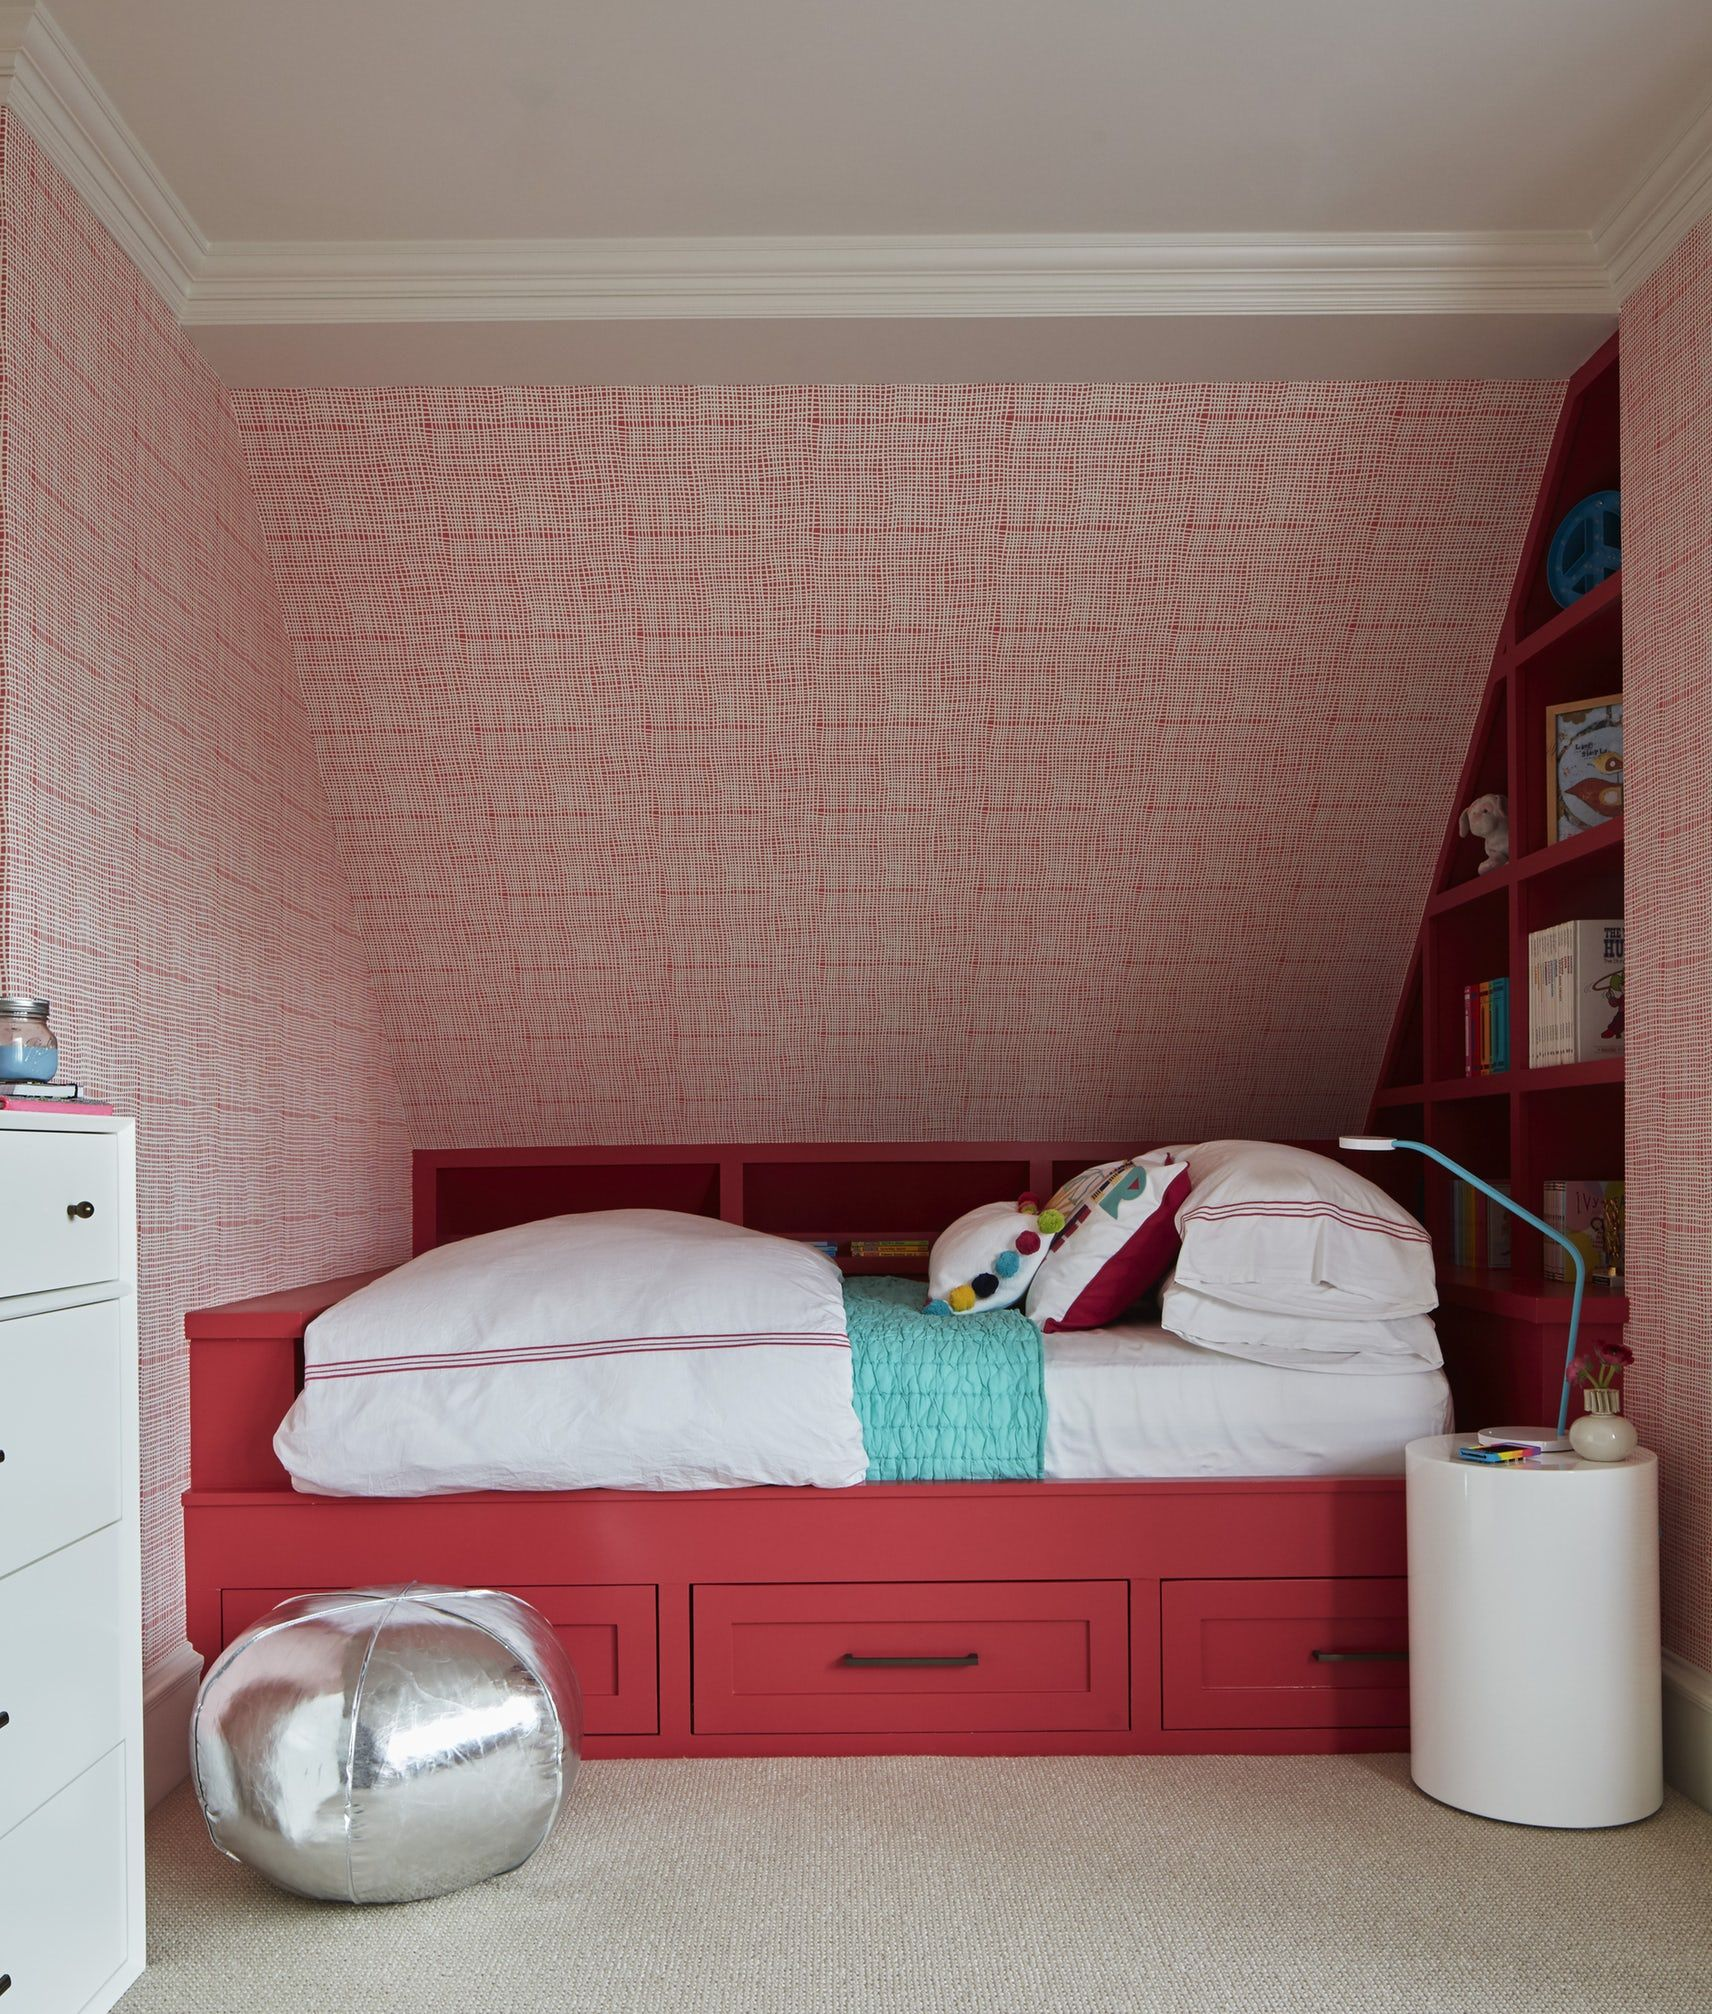 11 Unique Red Bedroom Ideas Red Decor Ideas for Bedroom